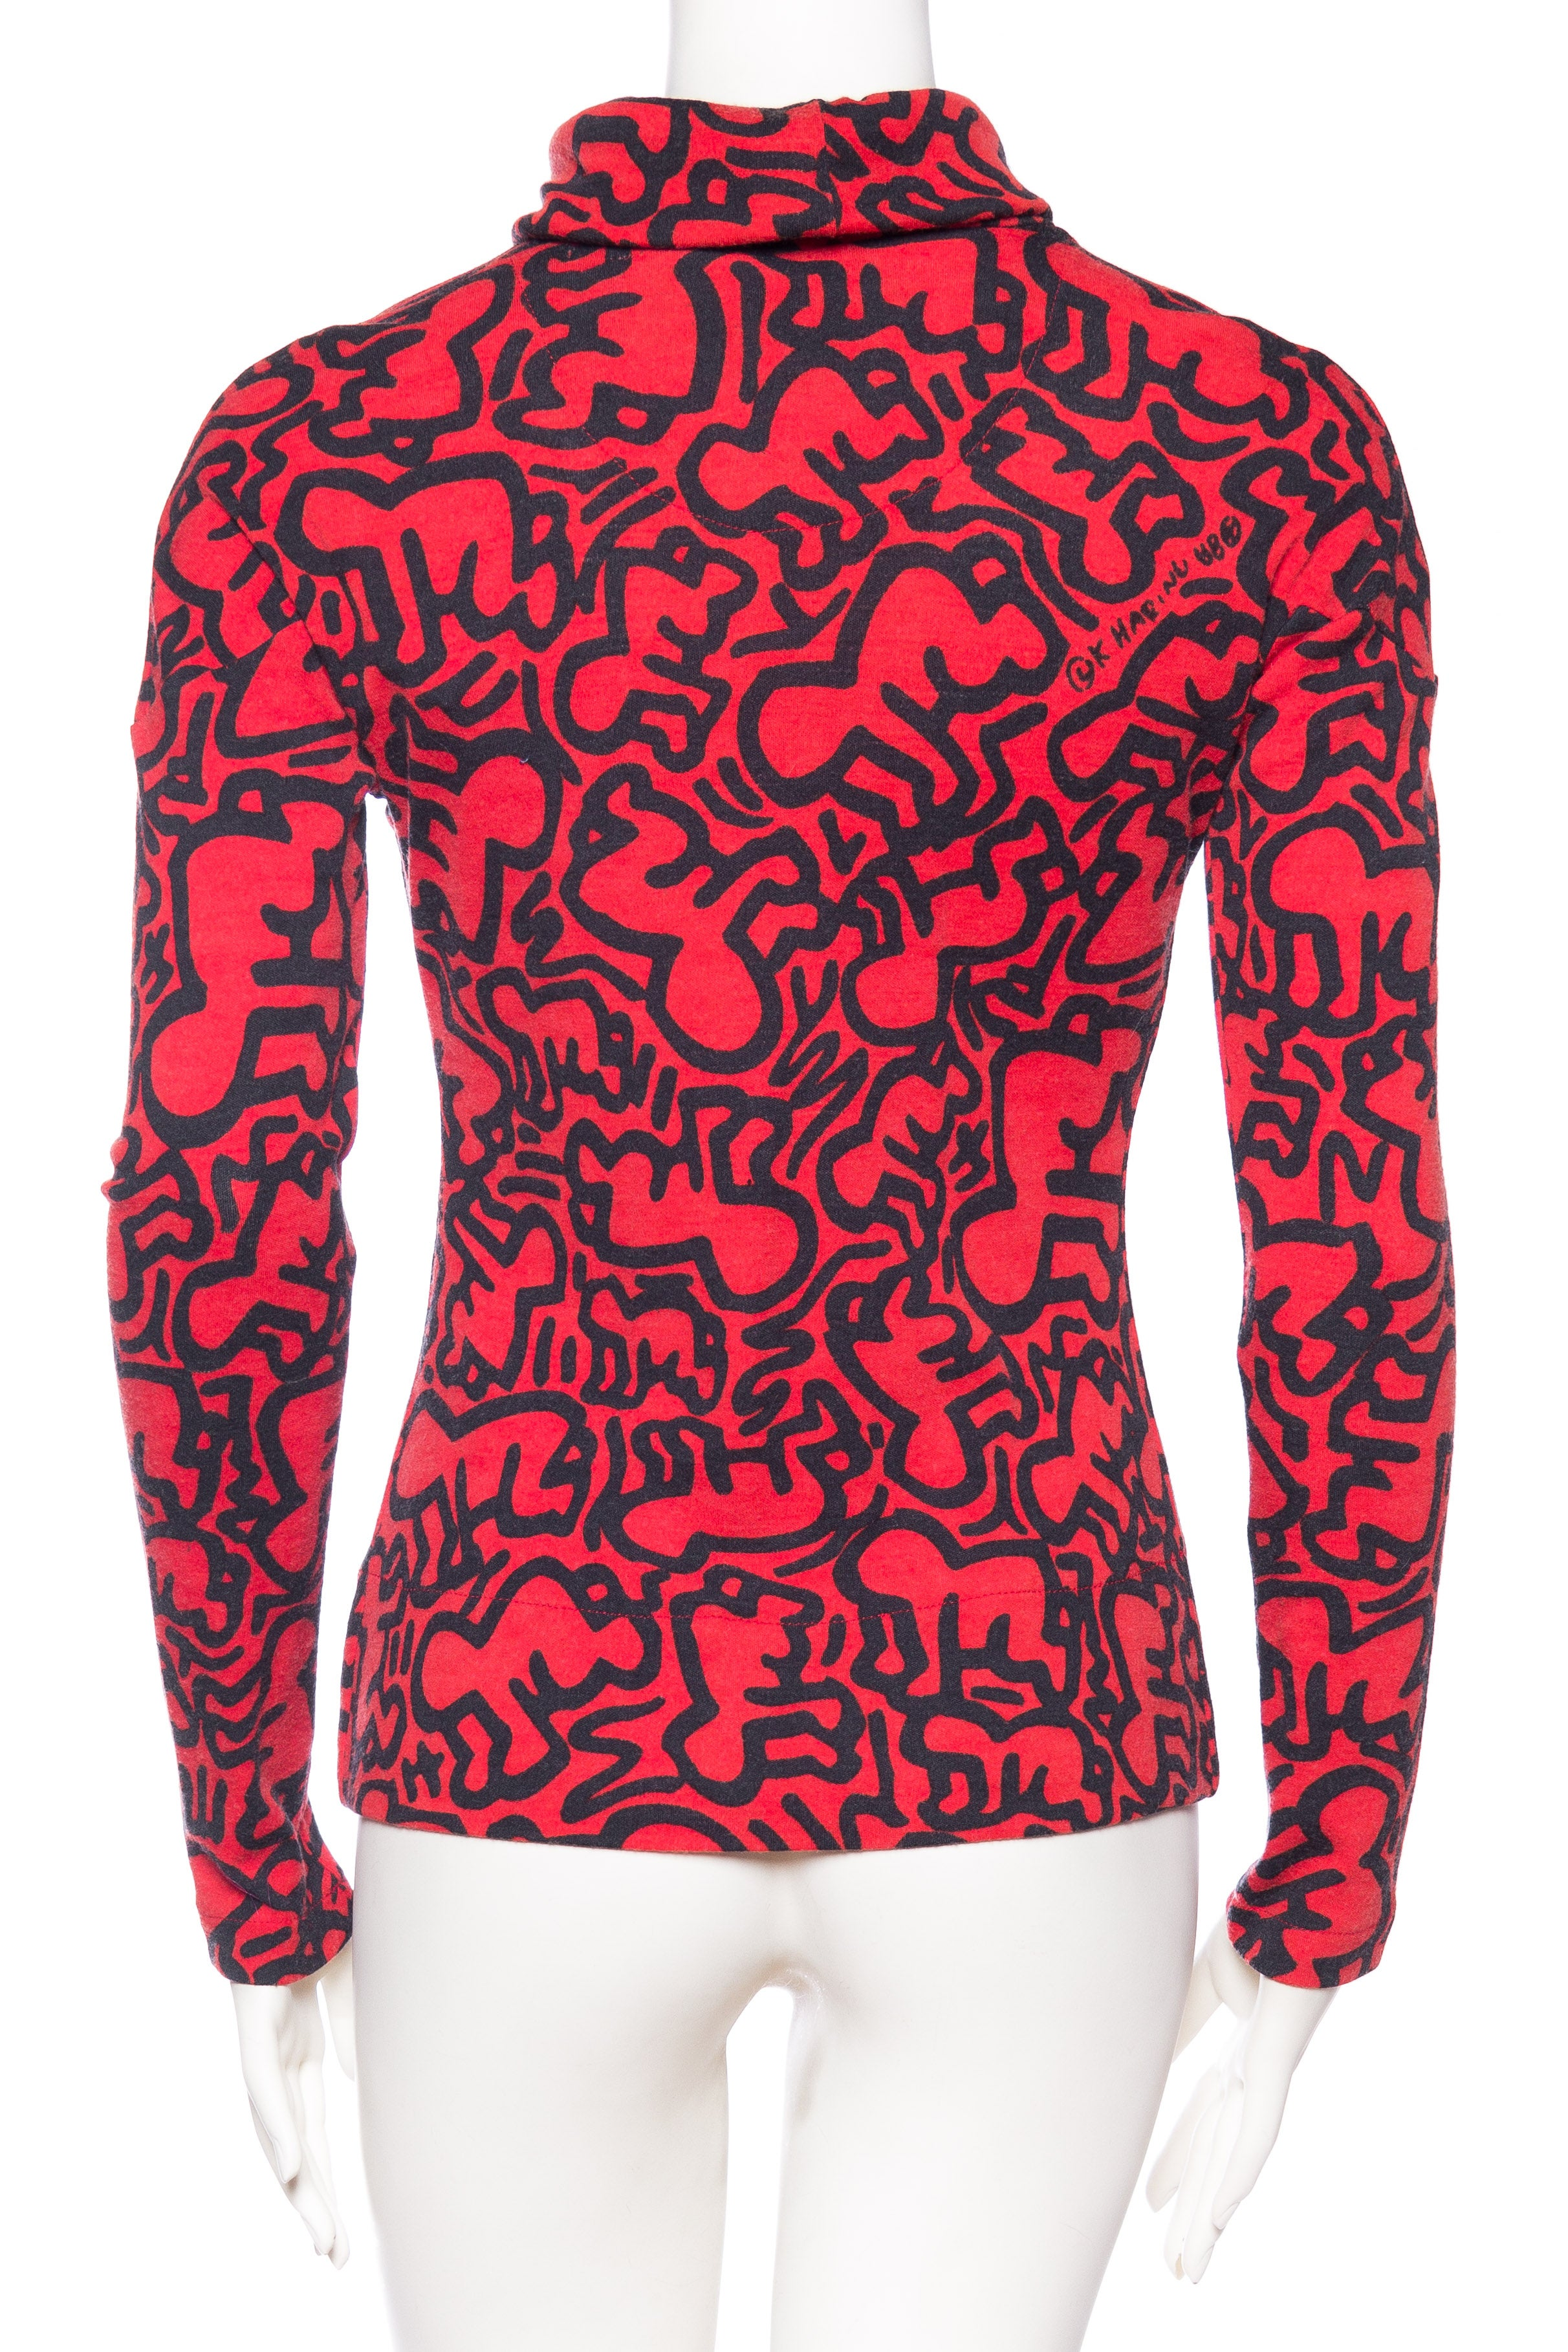 03130740cce 1980s Jean Charled de Castelbajac Keith Haring Radiant Baby Turtleneck  Sweater For Sale at 1stdibs